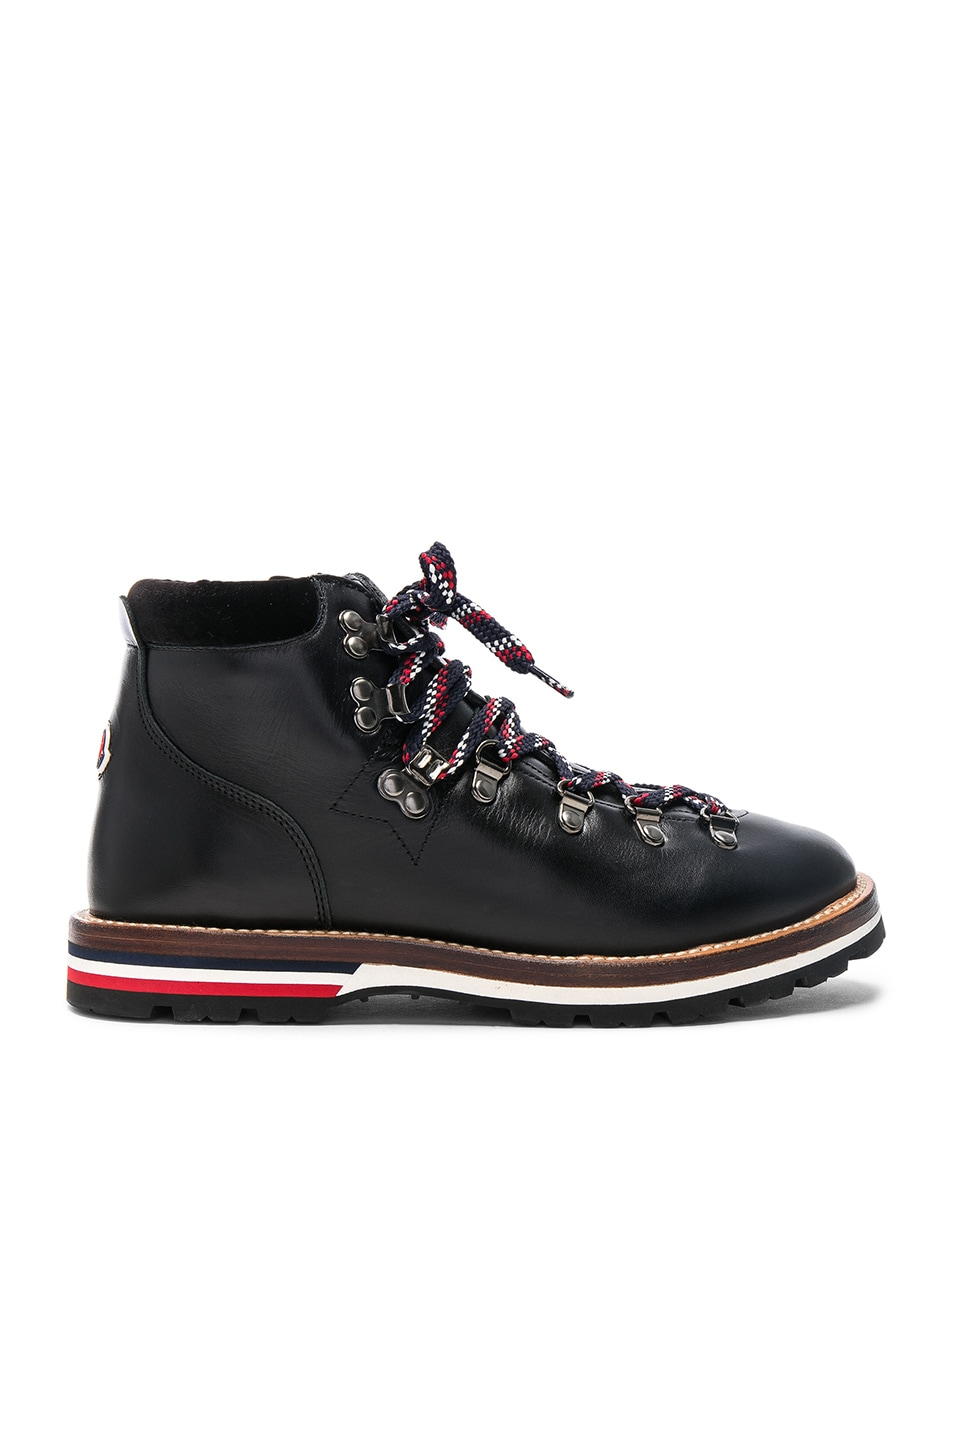 Image 1 of Moncler Leather Blanche Boots in Black